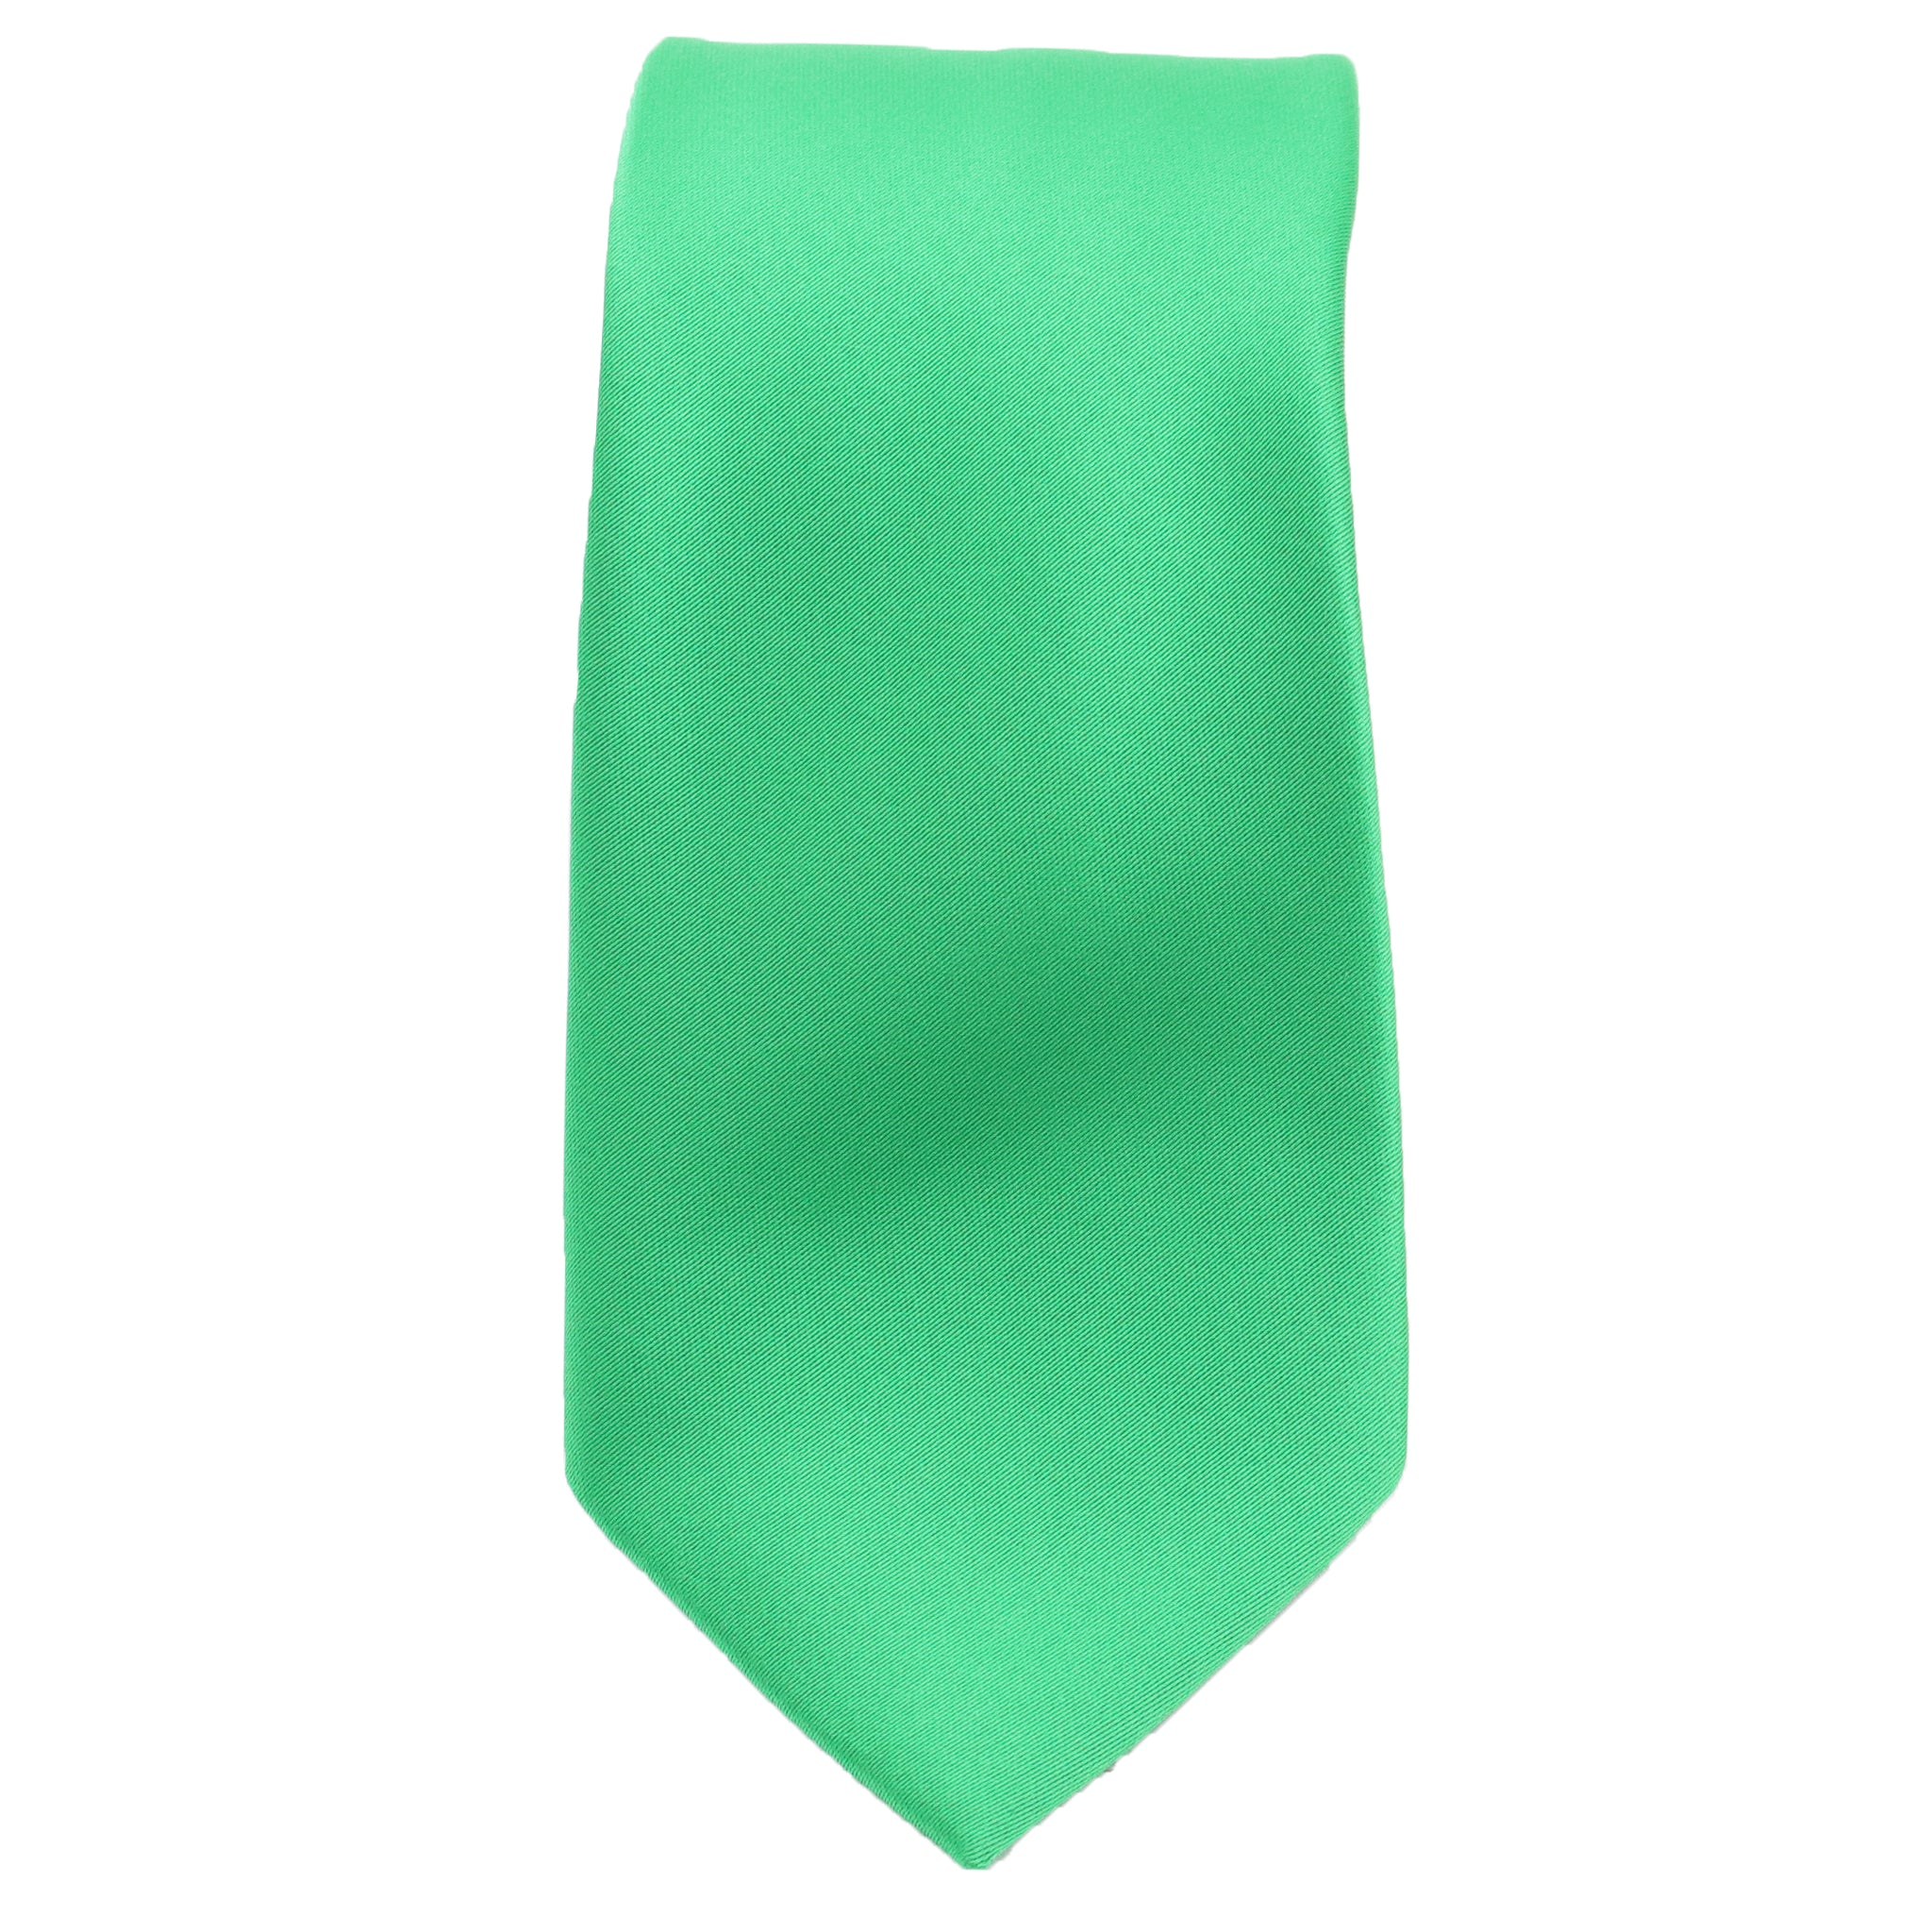 Emerald Green Satin Tie